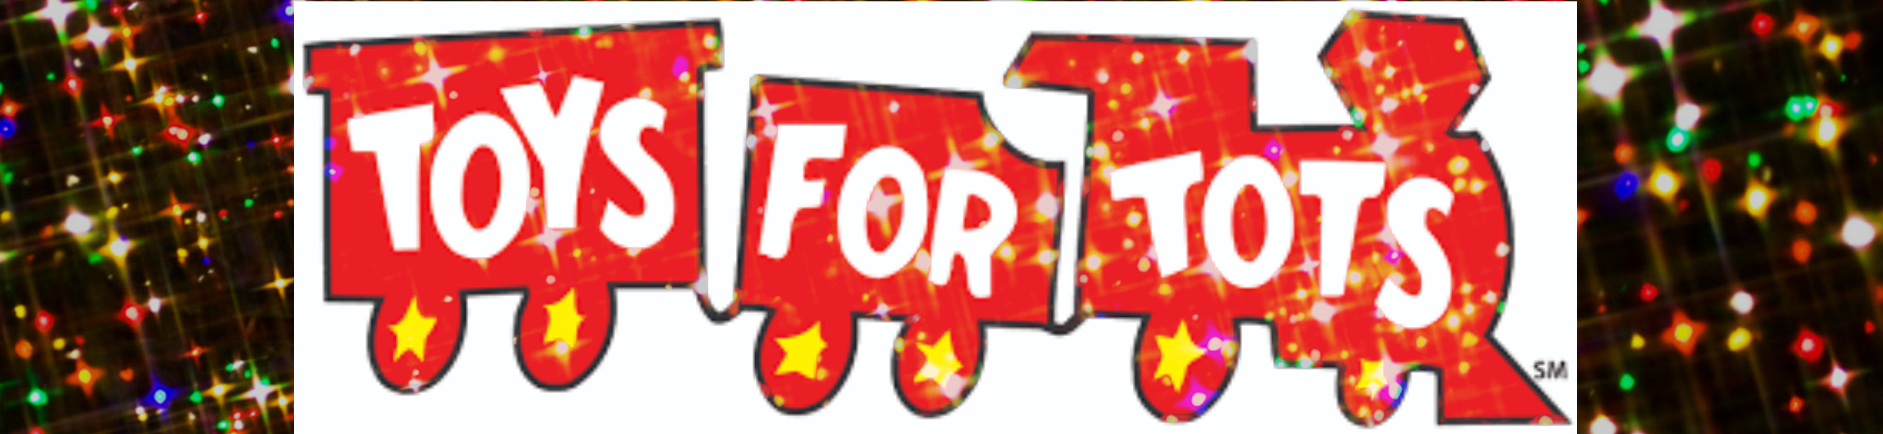 Every Christmas The Salvation Army Teams Up With U S Marine Corps Toys For Tots Program To Collect Children Ages 0 17 In Greater Sheboygan